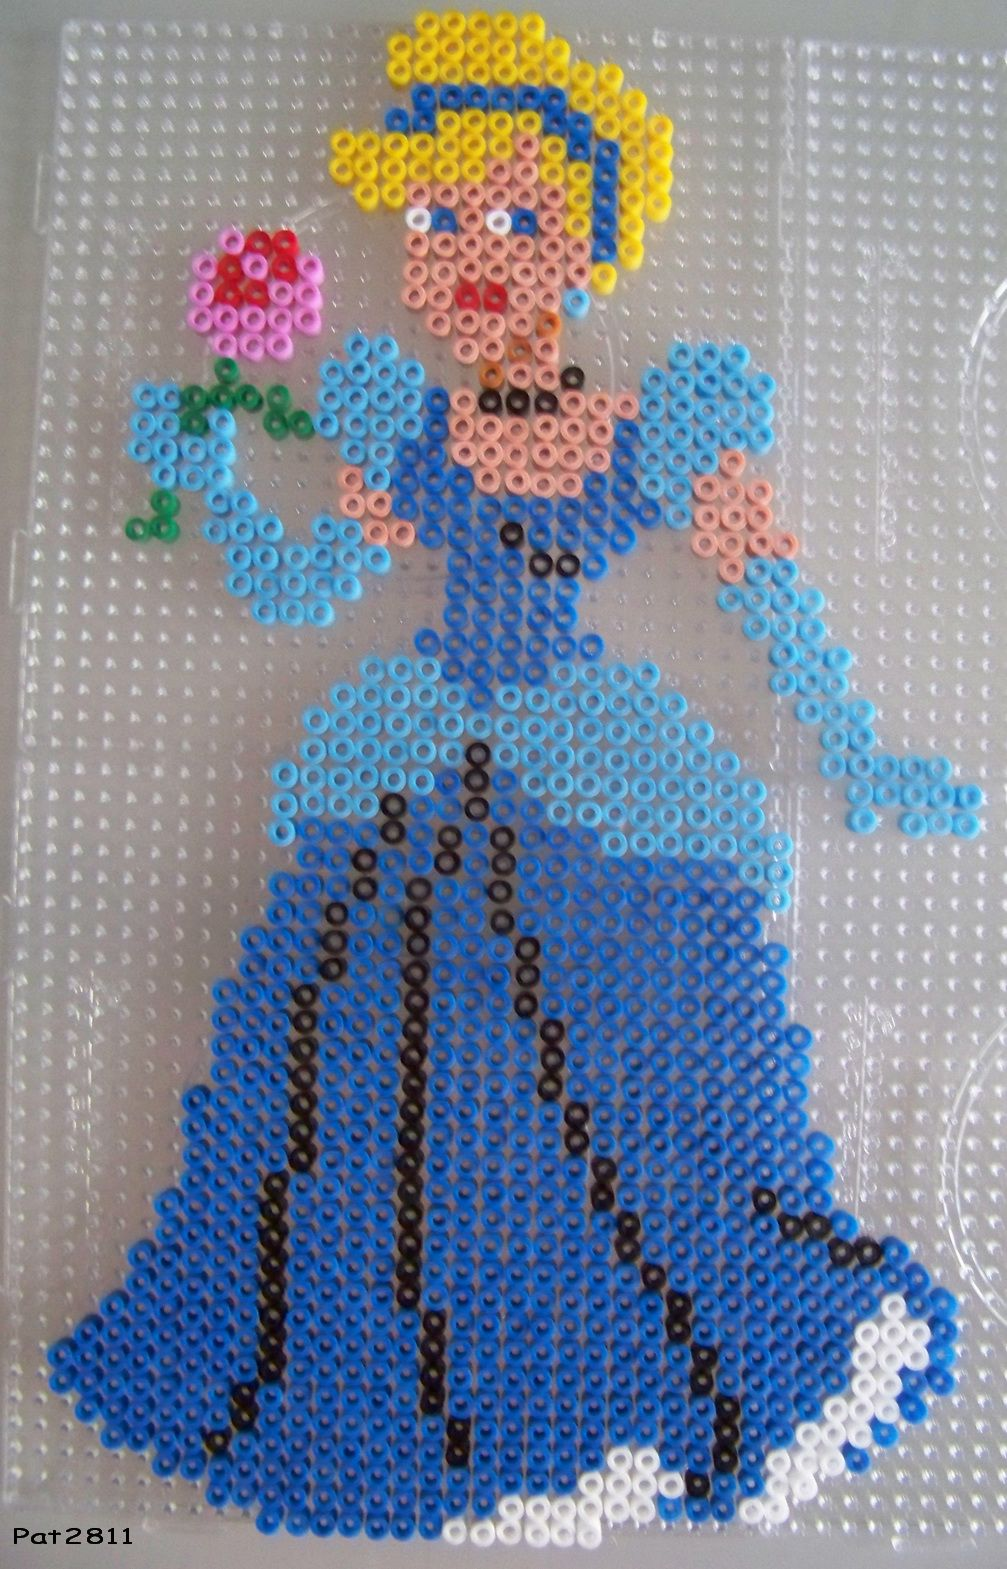 perles a repasser disney perler beads perler bead. Black Bedroom Furniture Sets. Home Design Ideas